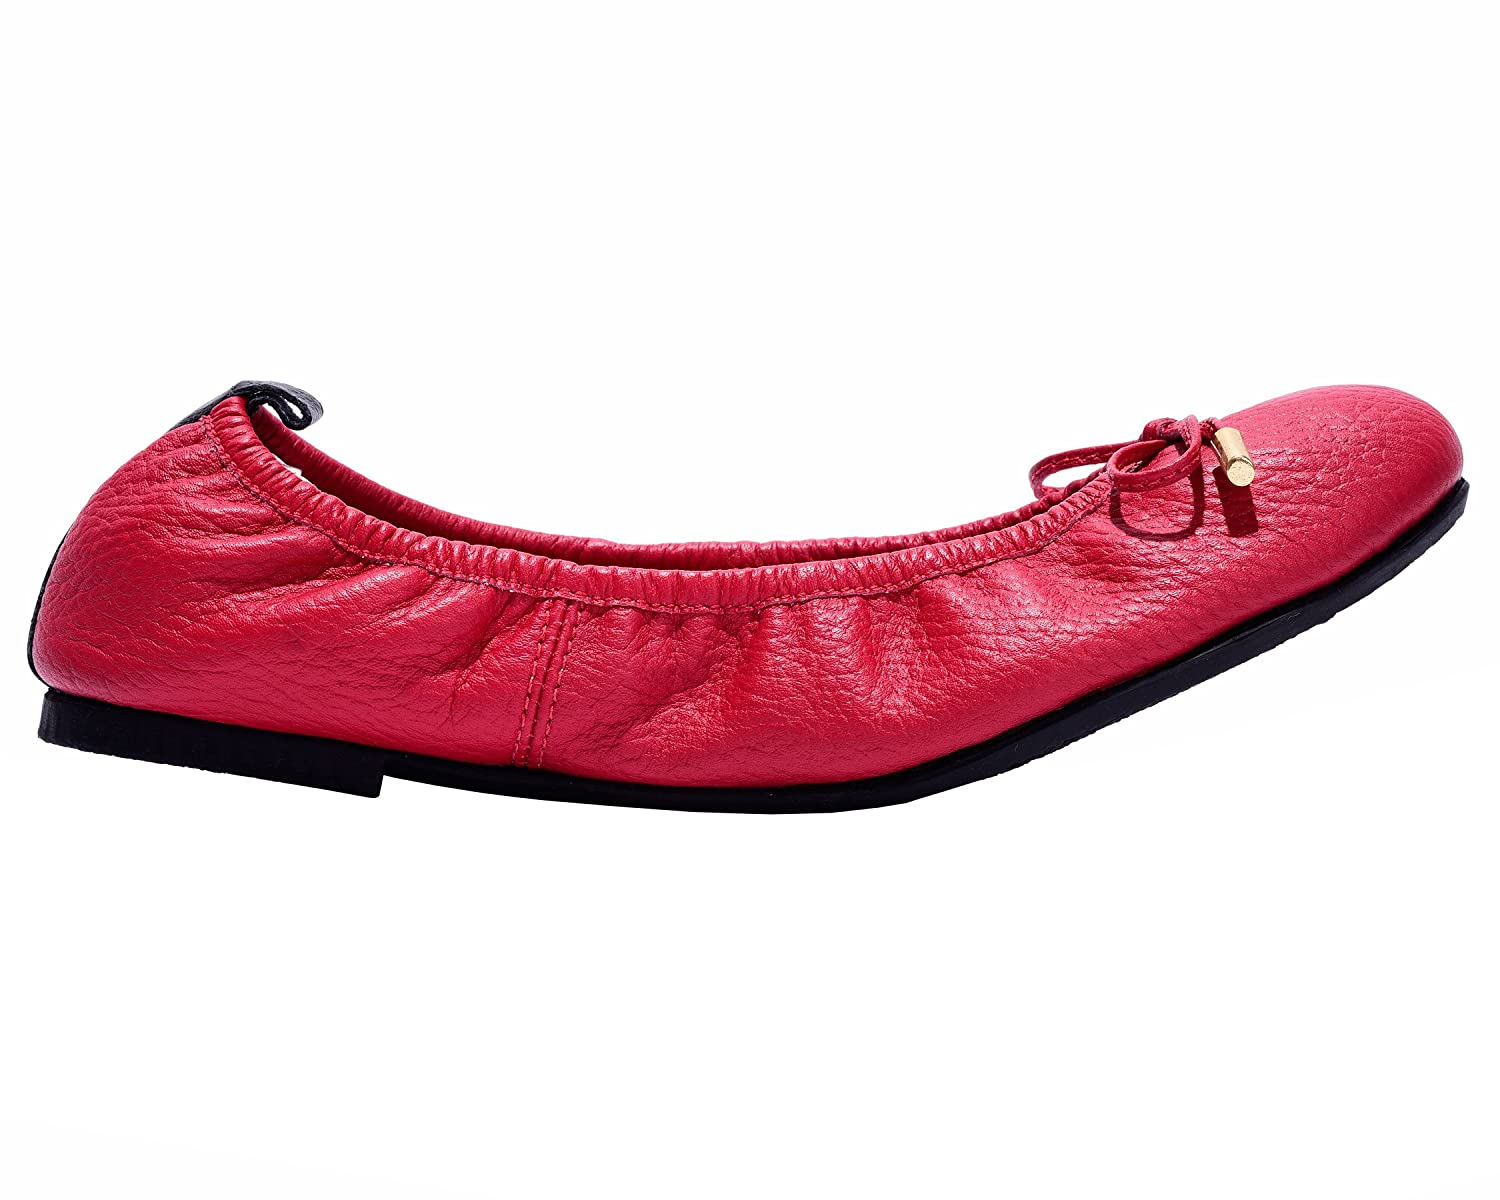 VIDALeather Daily Women Ballerina Colombian Leather Mujer Flats   Zapatillas de Mujer Leather B01K3BT52O 9 B(M) US Red a6fe7b